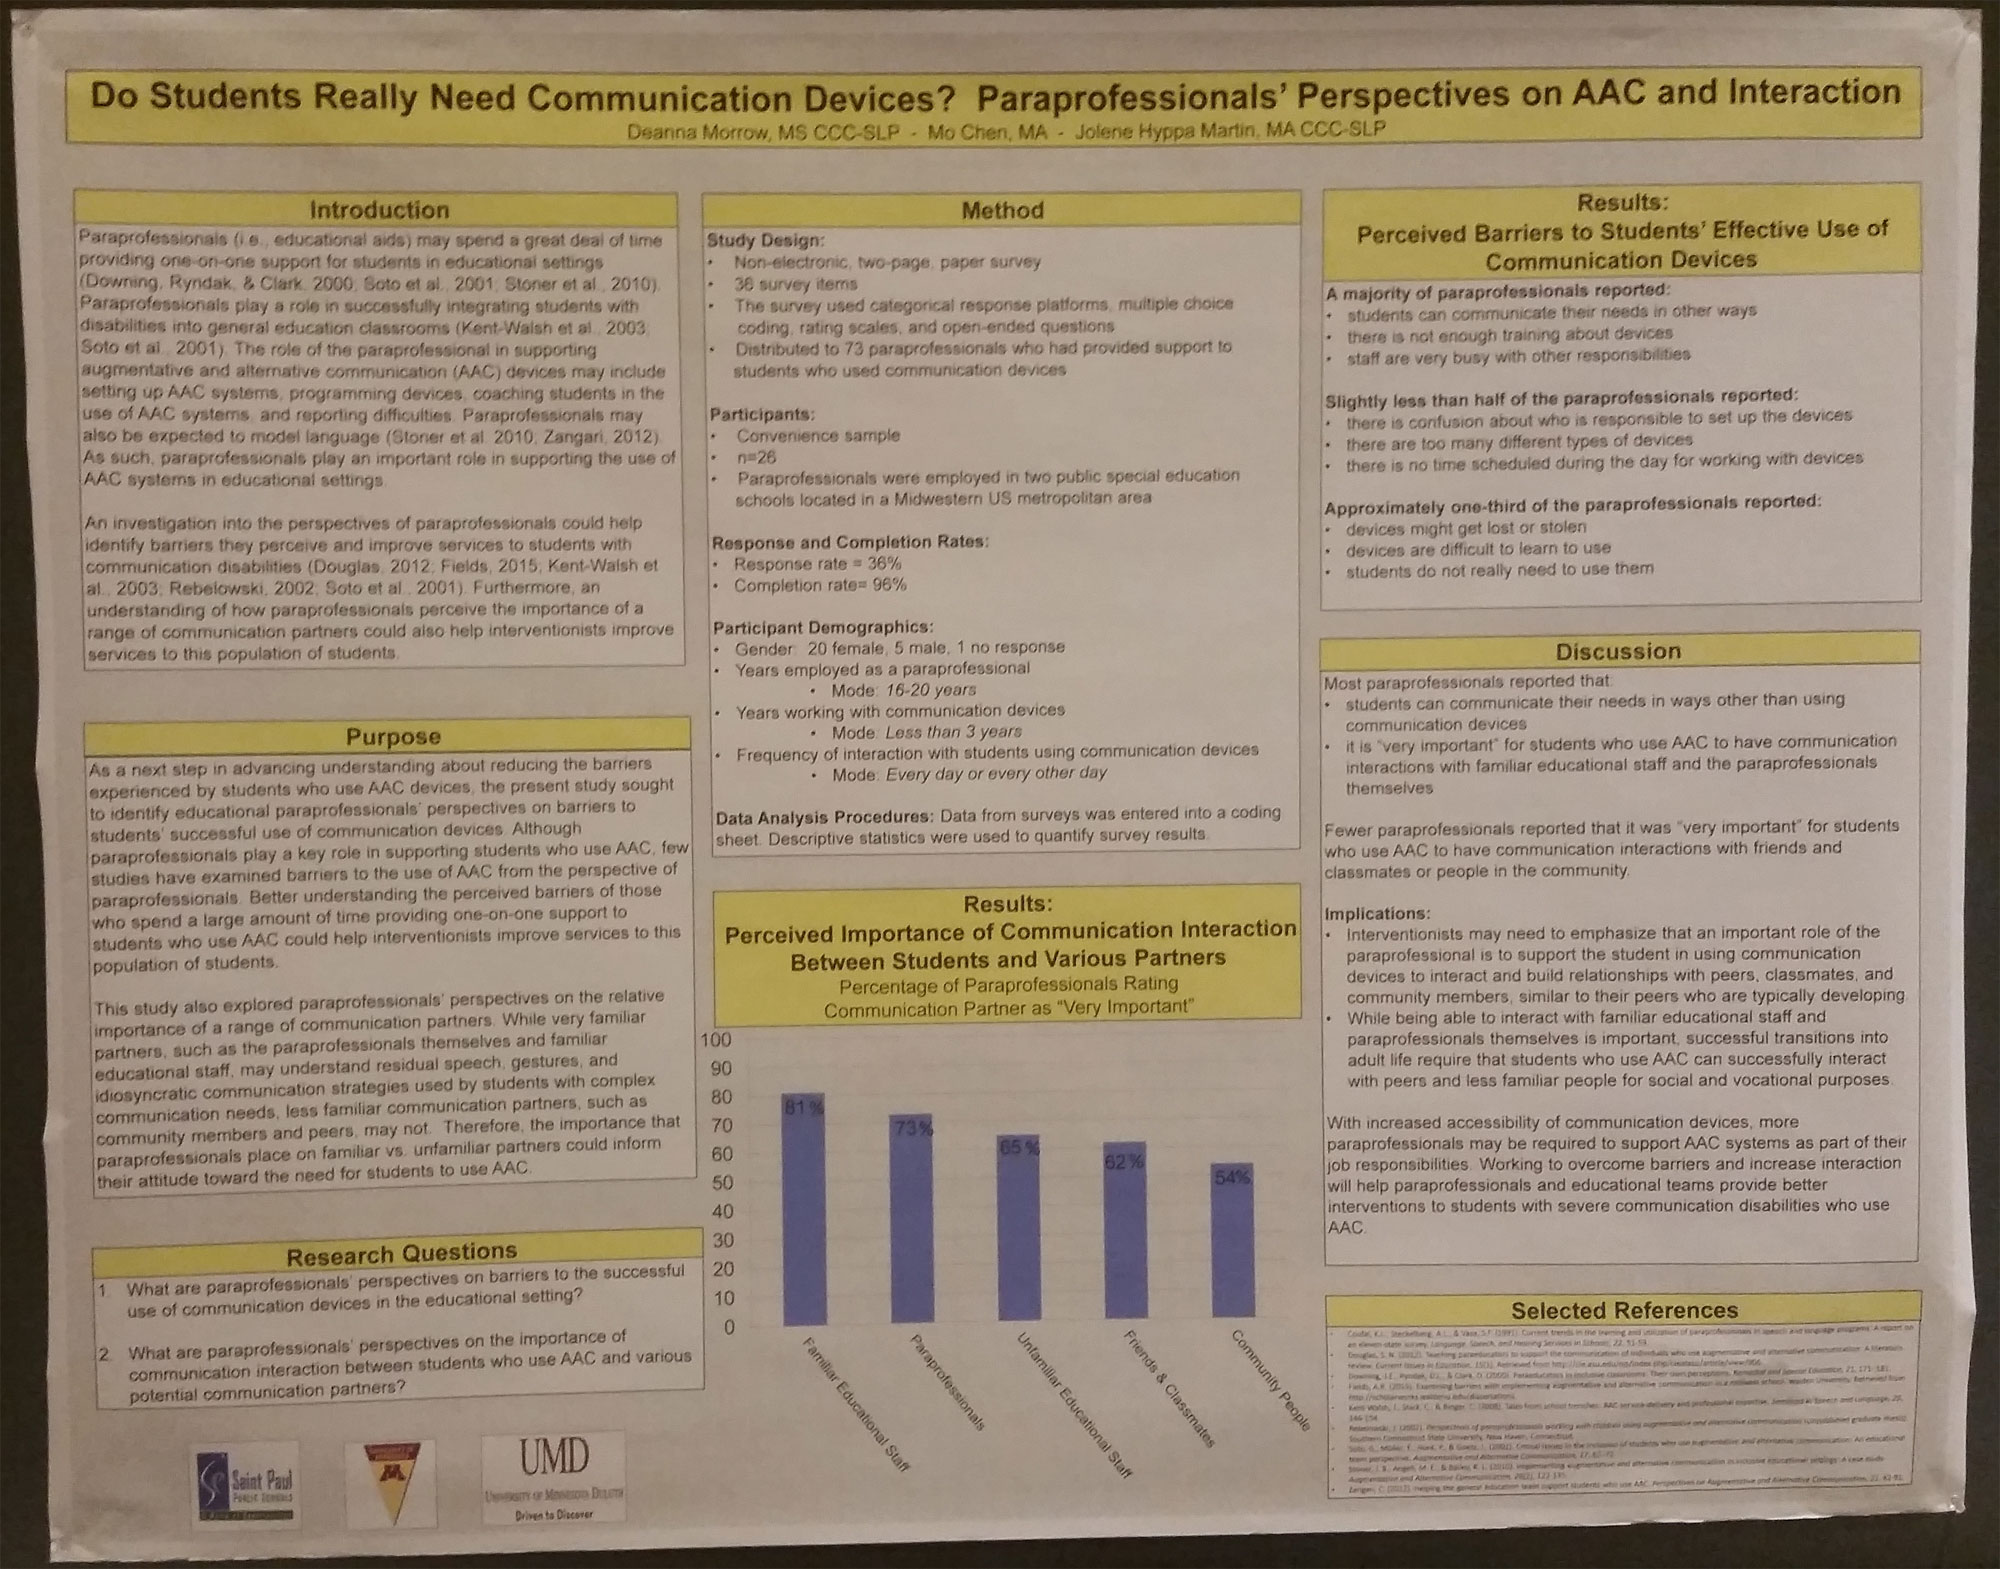 When Is Use Of Paraprofessionals >> Paraprofessionals Perspectives On Aac And Interaction